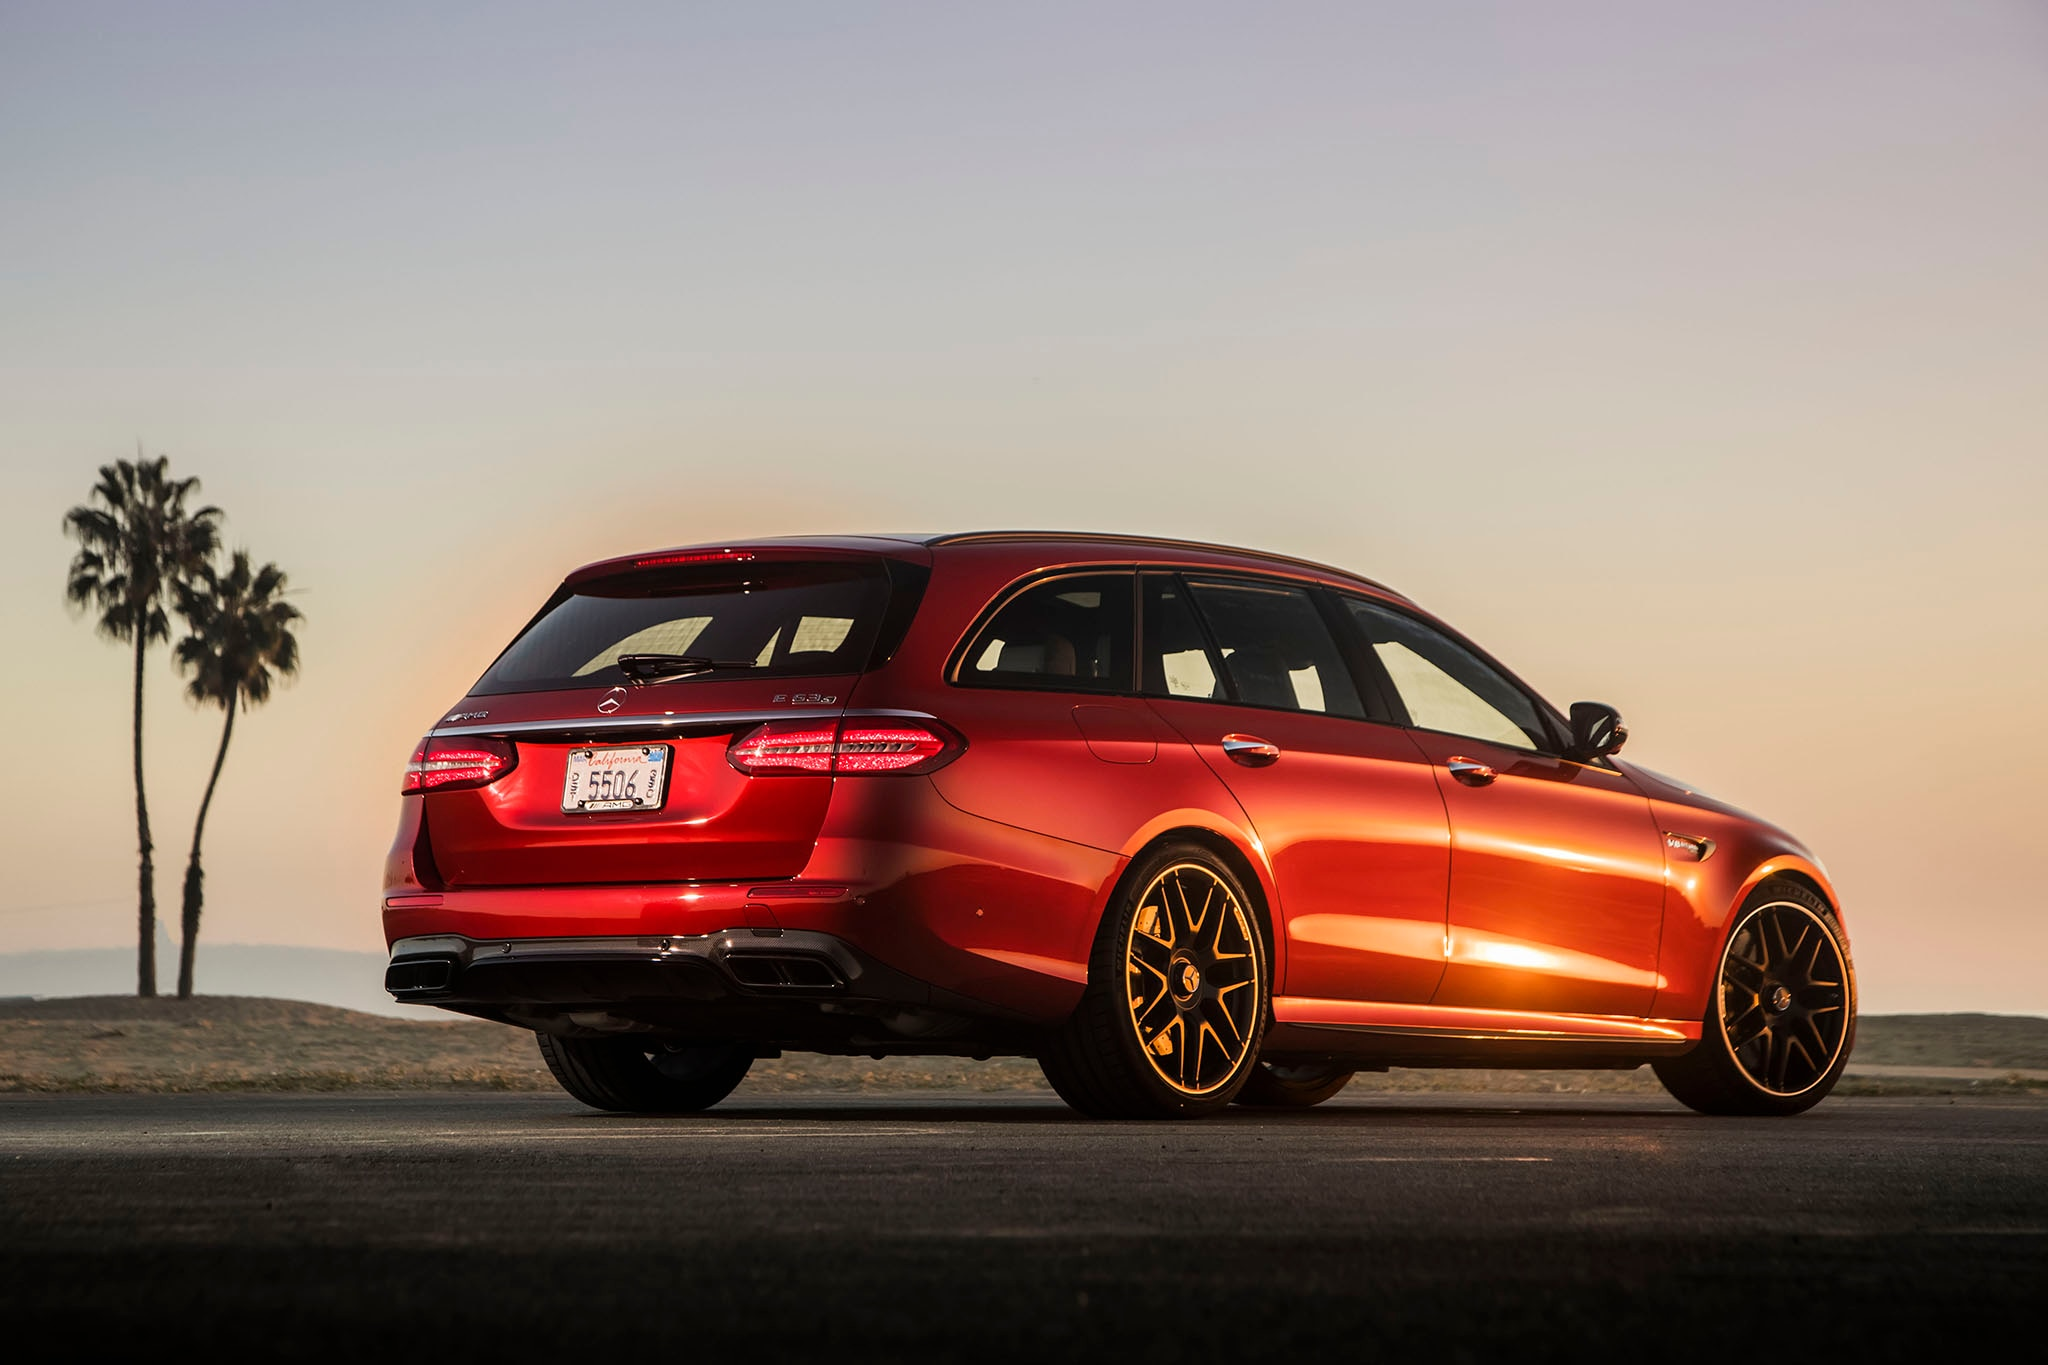 2018 mercedes amg e63 s wagon priced from 107 945 for 2018 mercedes benz amg e63 wagon